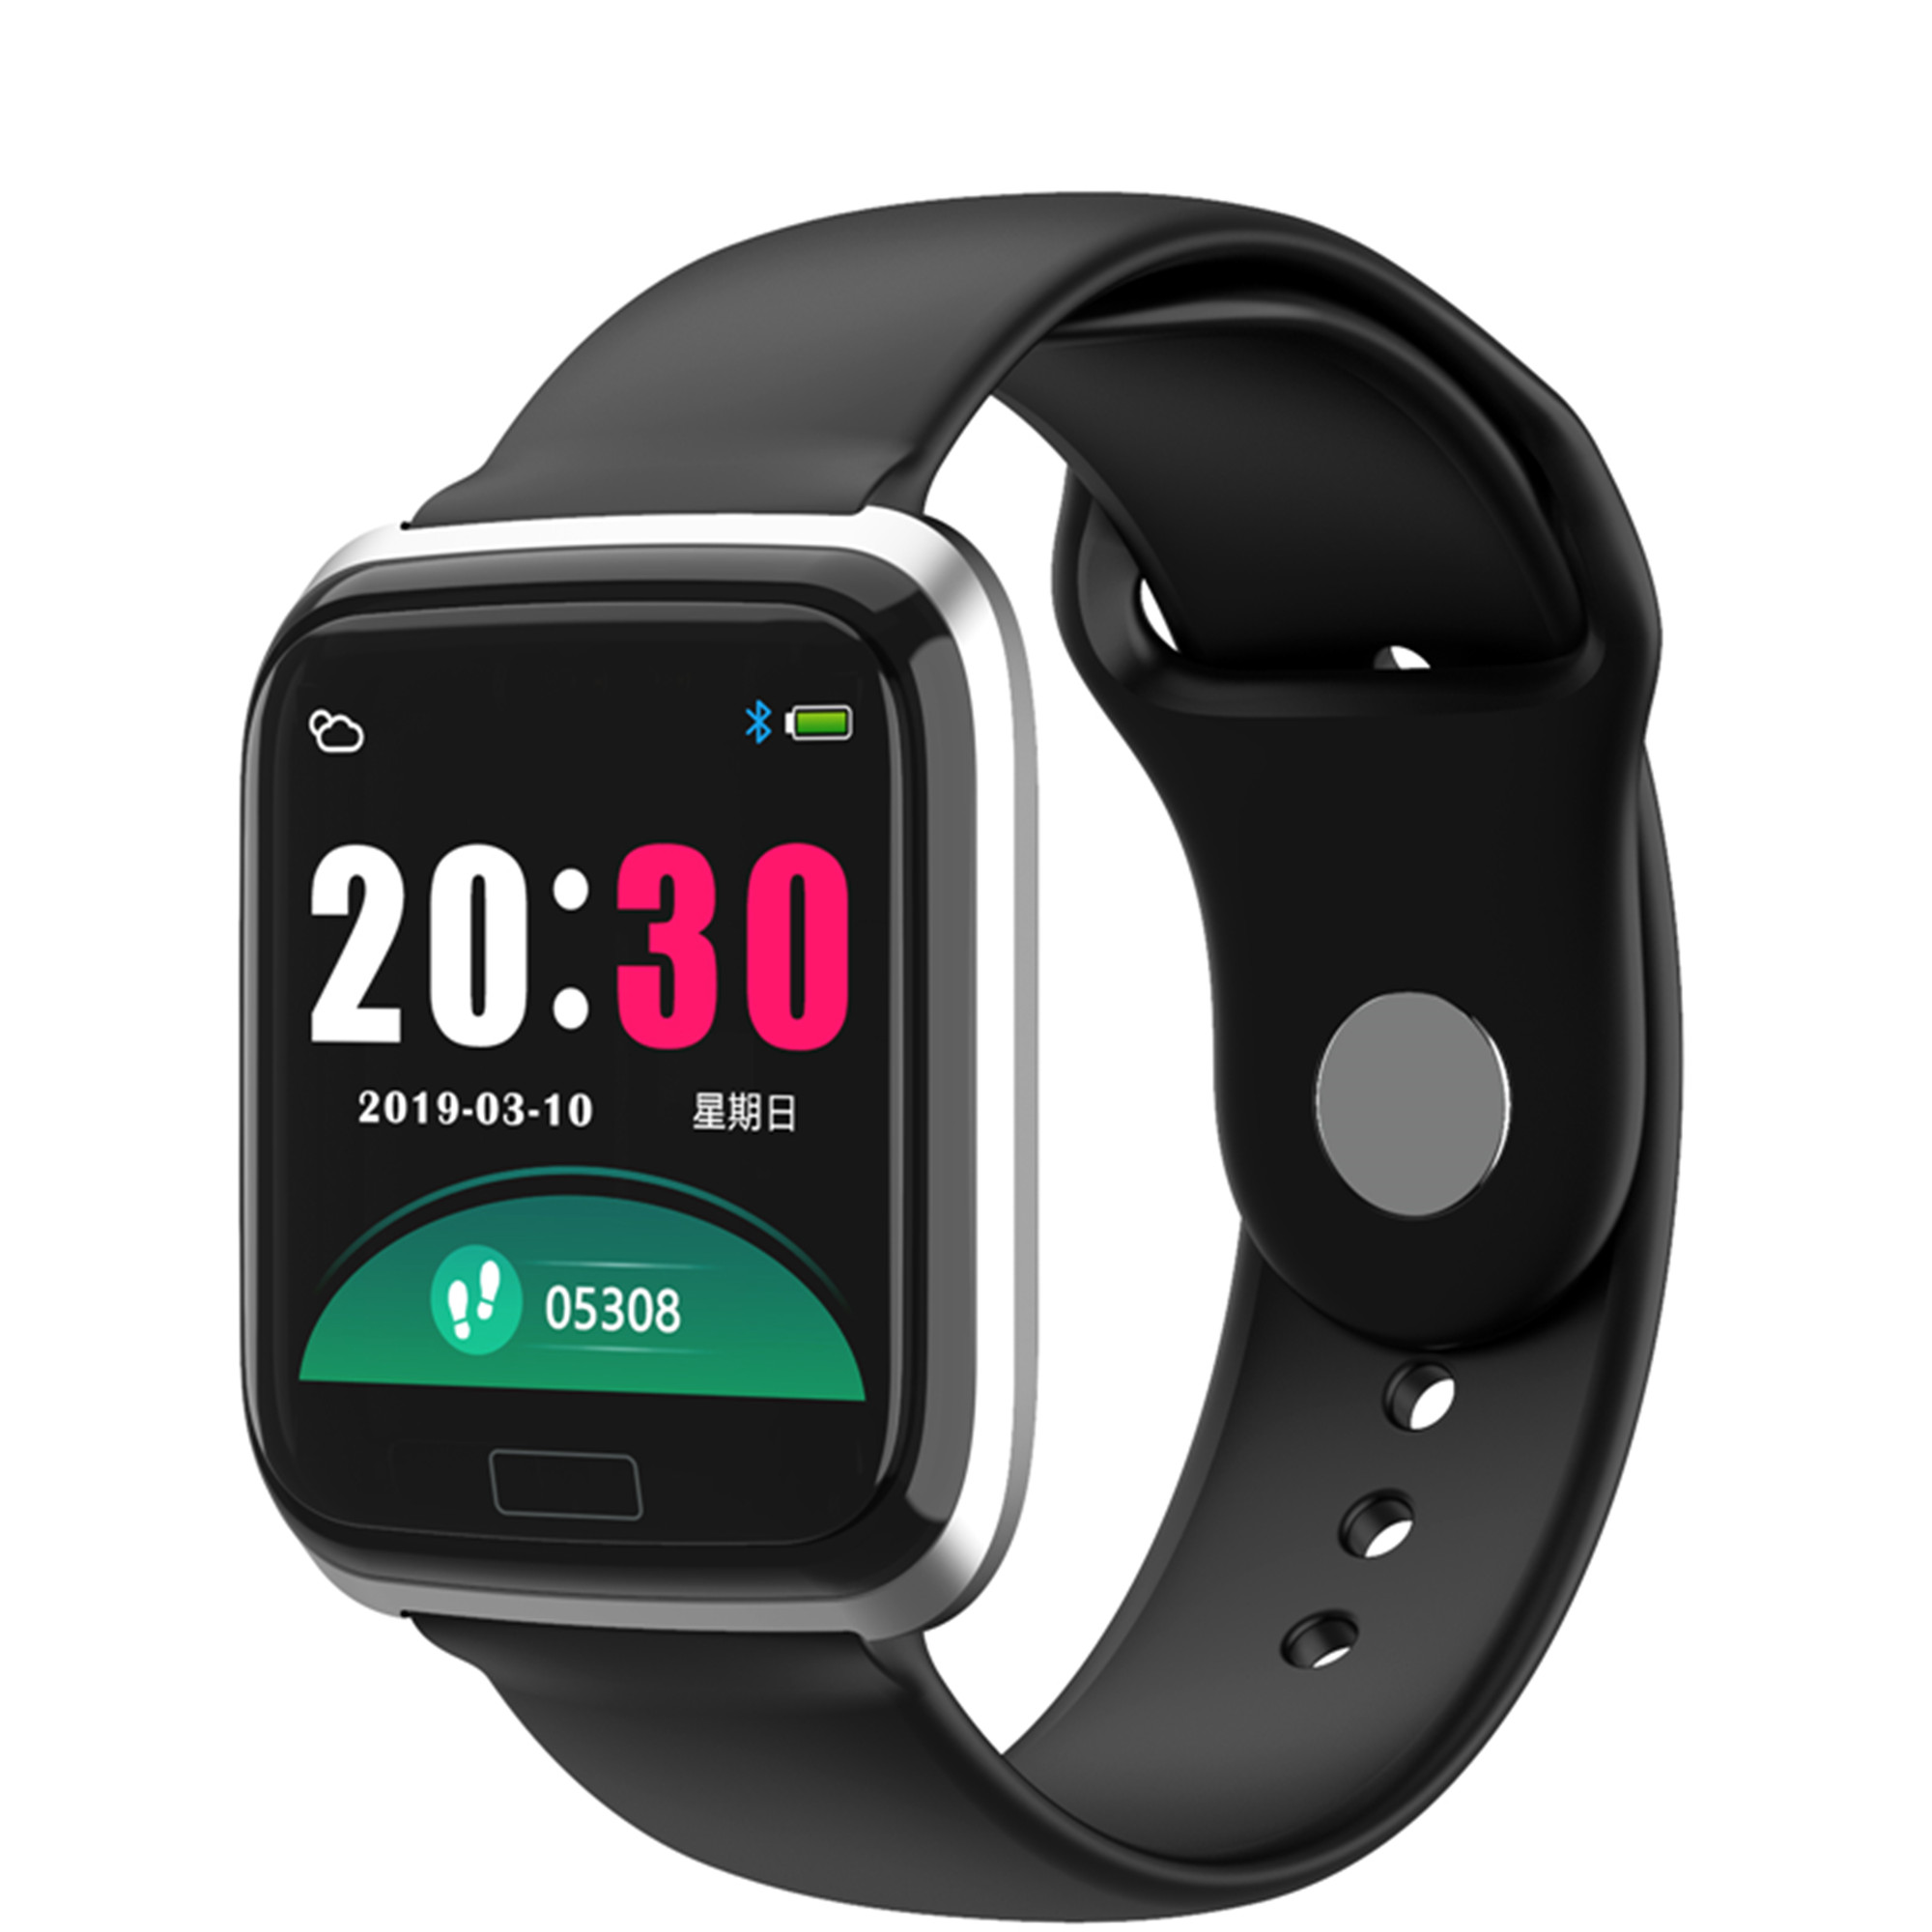 CY05 Smart Watch Color Screen Sports Waterproof With Heart Rate Blood Pressure Health Step Remote Monitoring Bracelet PK B57